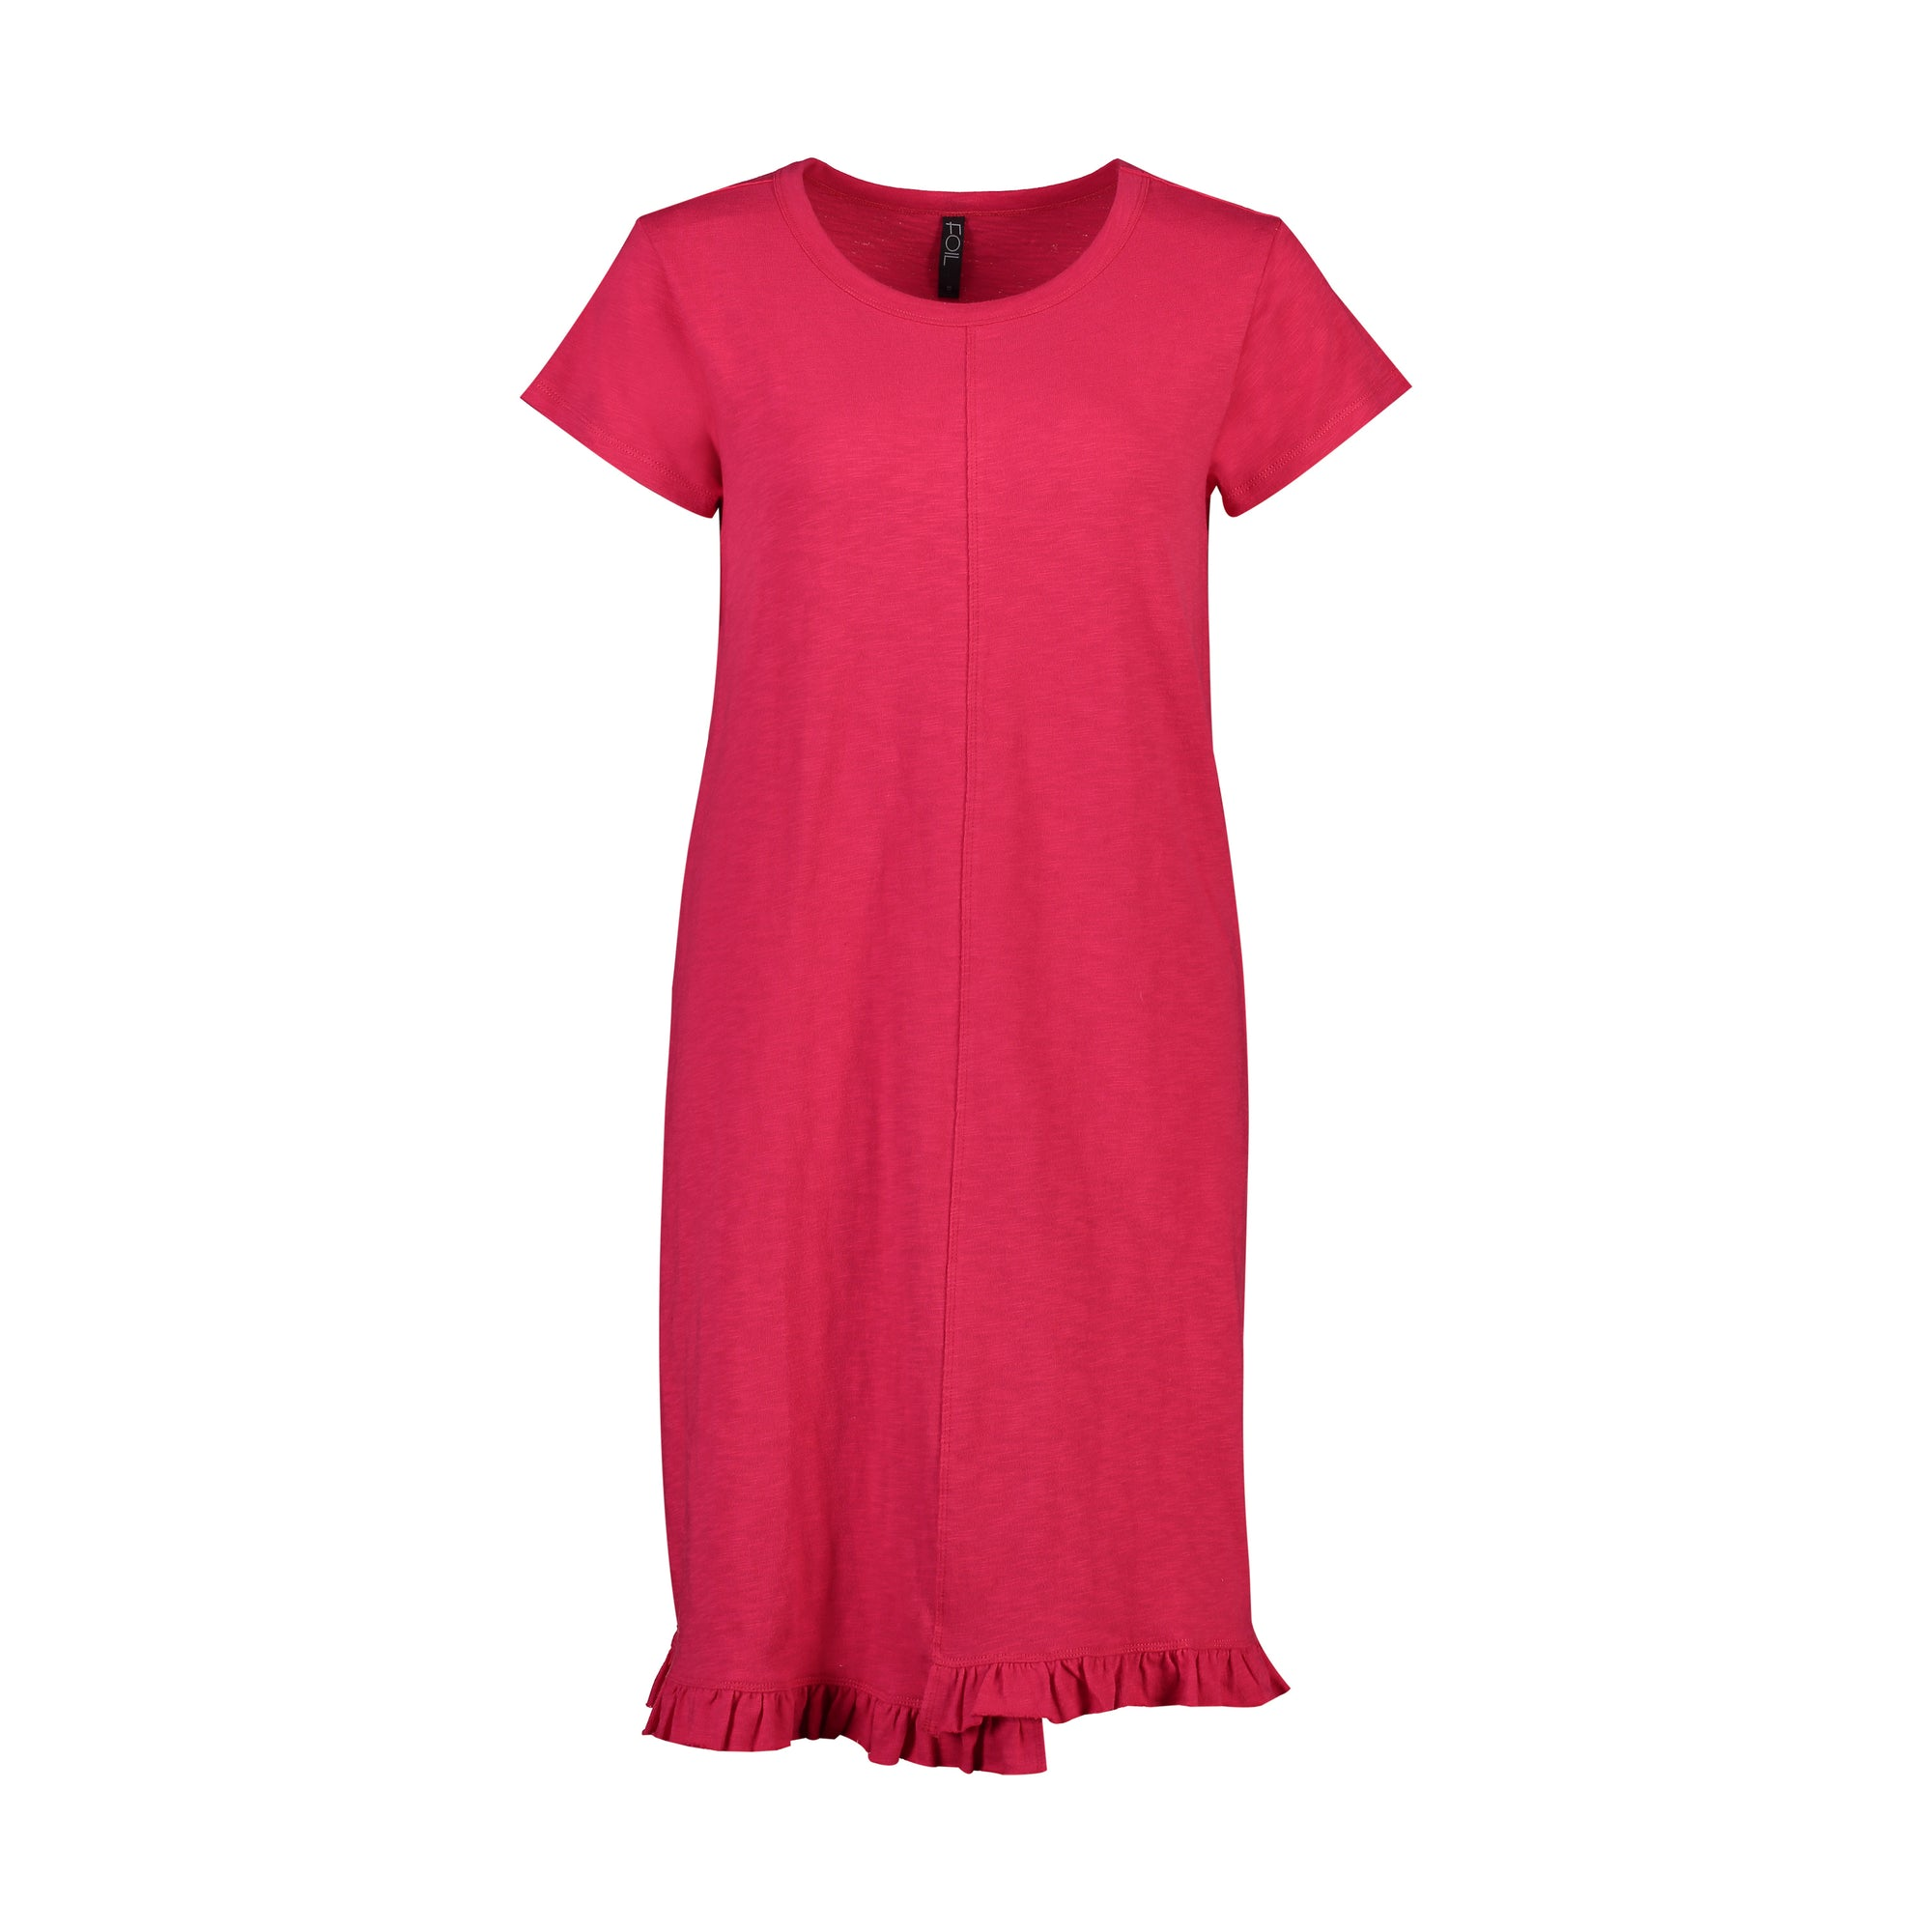 Foil Frill of it All T-shirt Dress in Rasberry